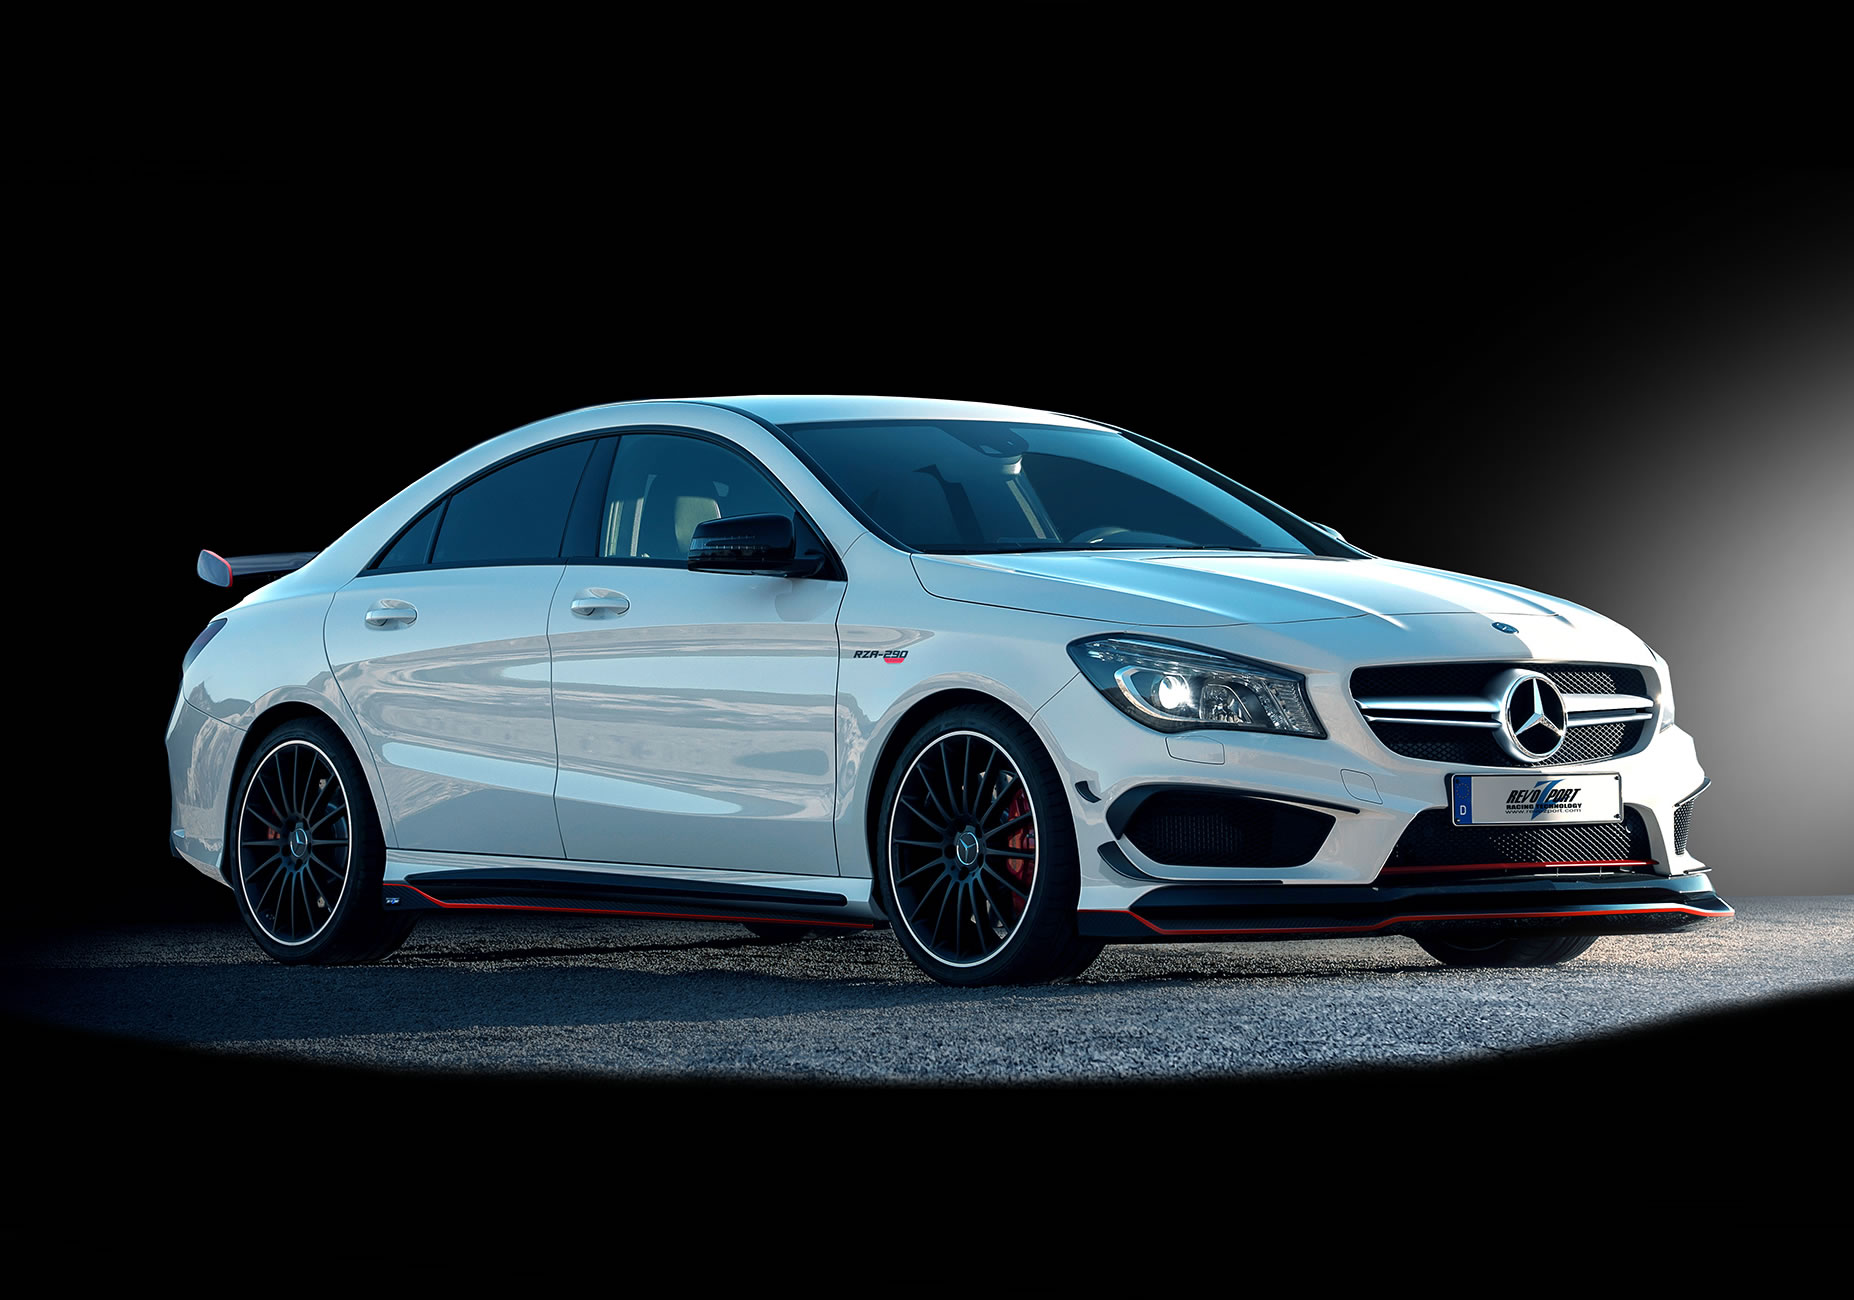 2015 Mercedes-Benz CLA 45 AMG, the Epitaph of Power and Class